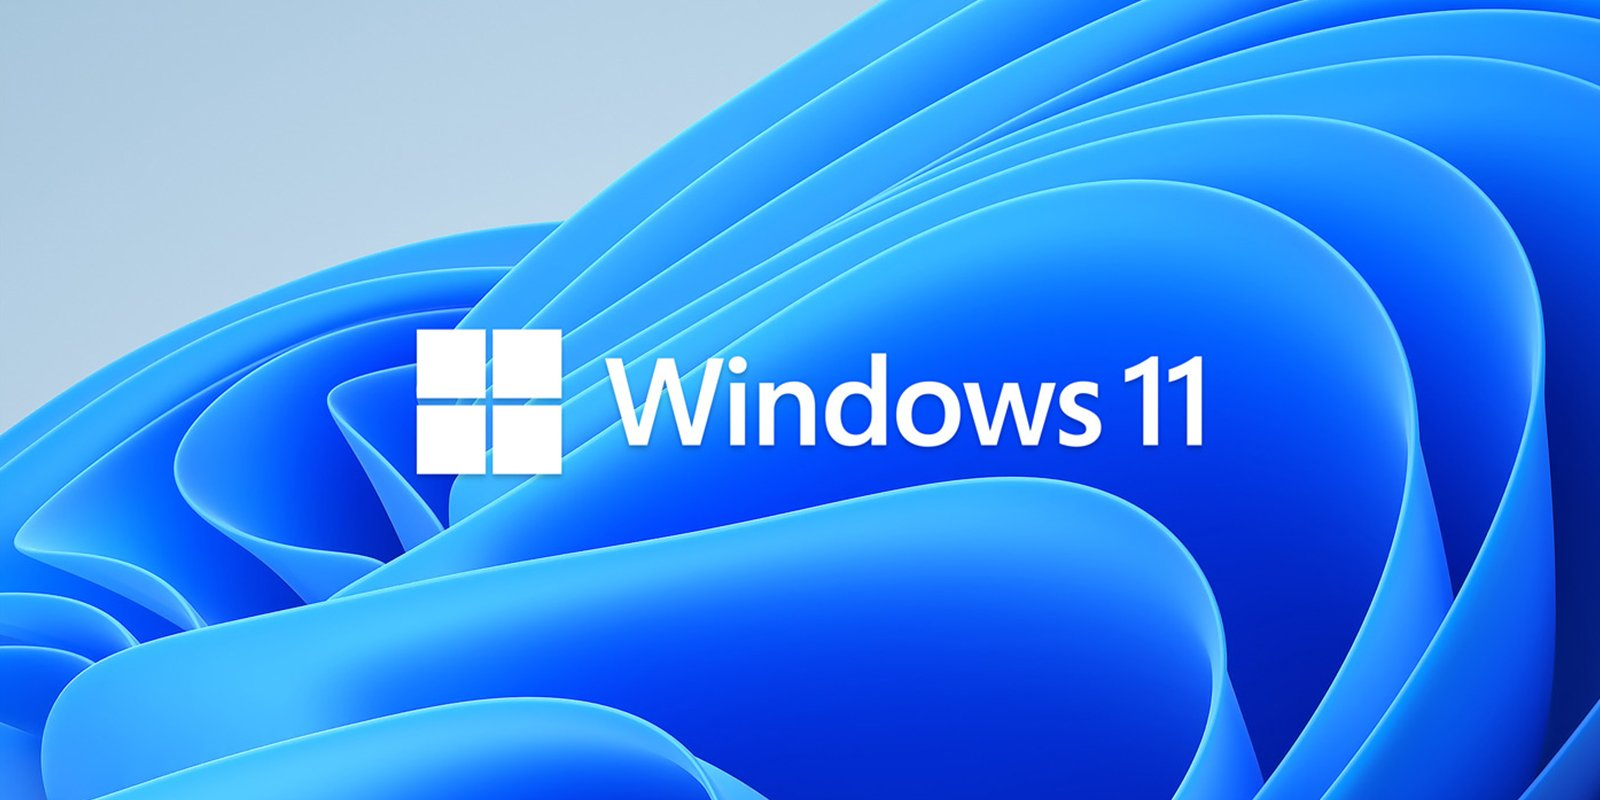 Windows 11 officially launches today, available to download